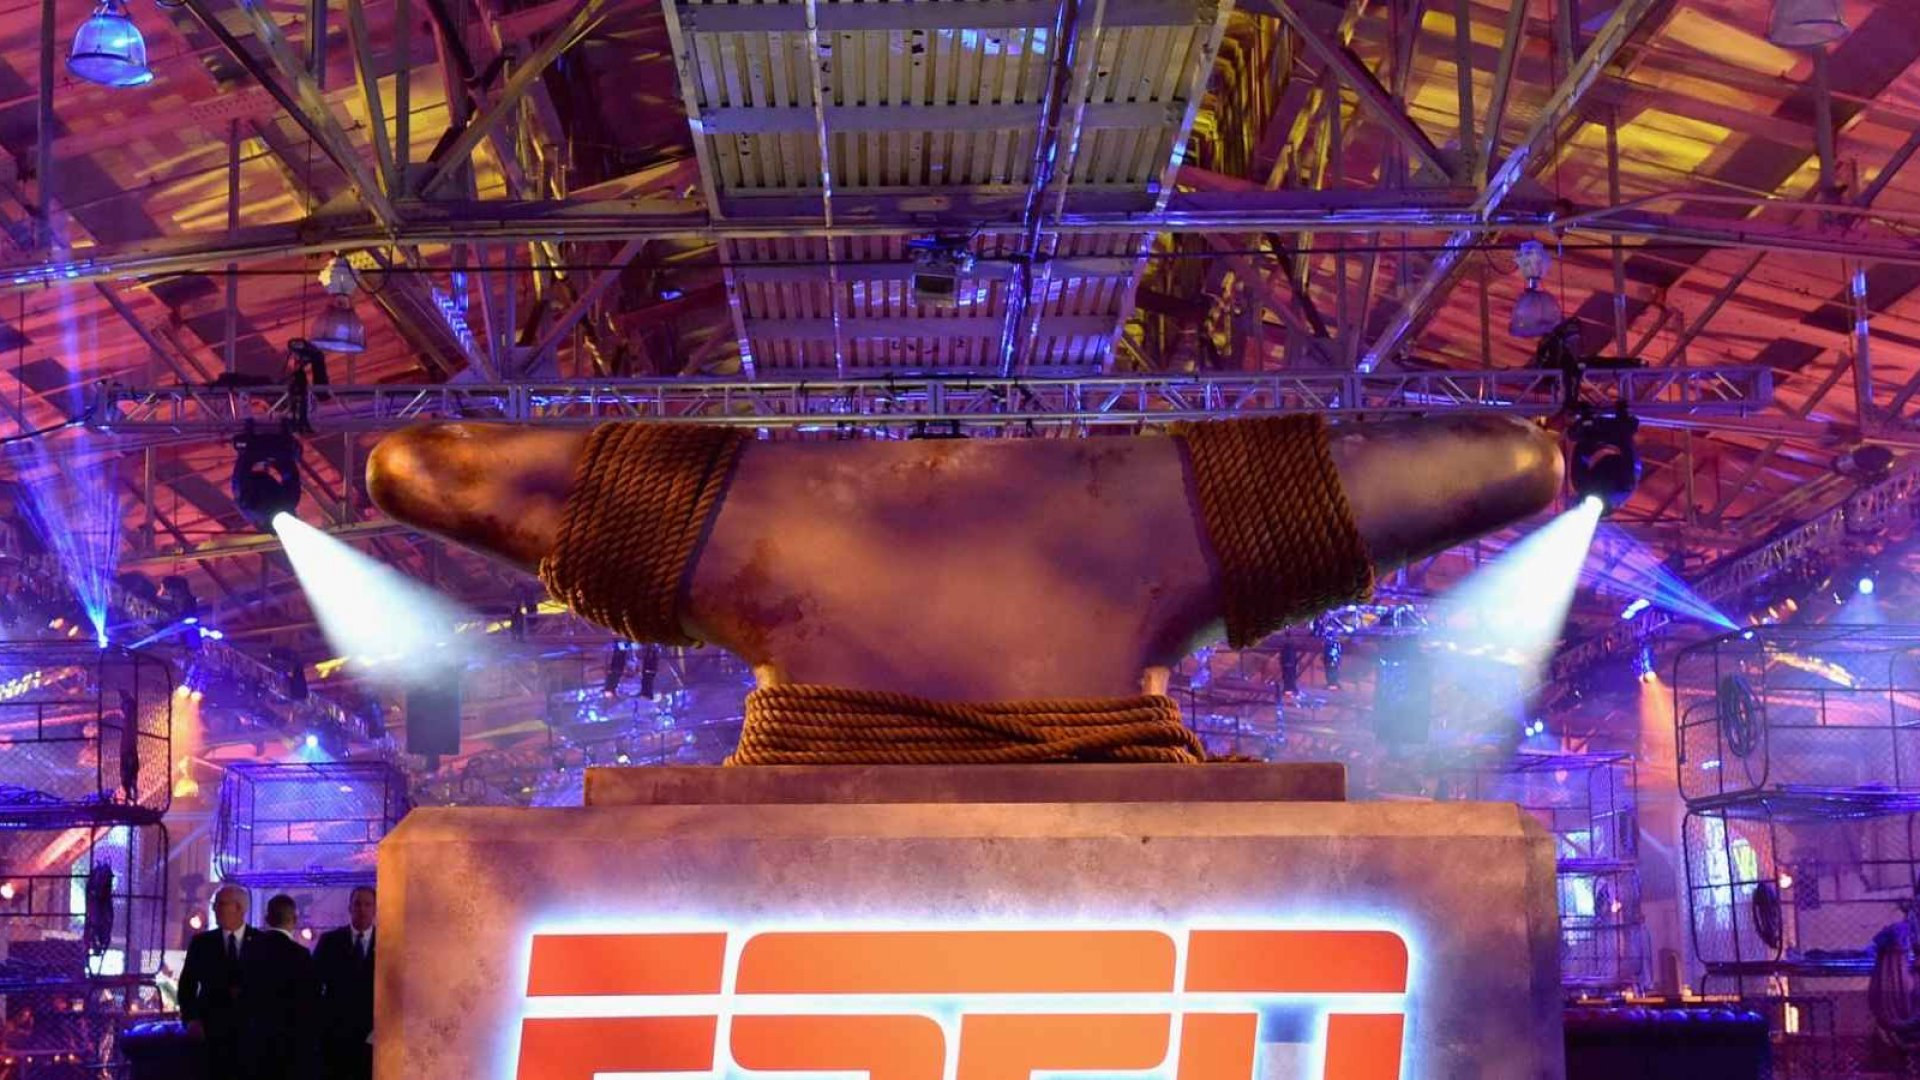 Try These 4 Tips From ESPN's SportsCenter to Create Wonder for Your Brand